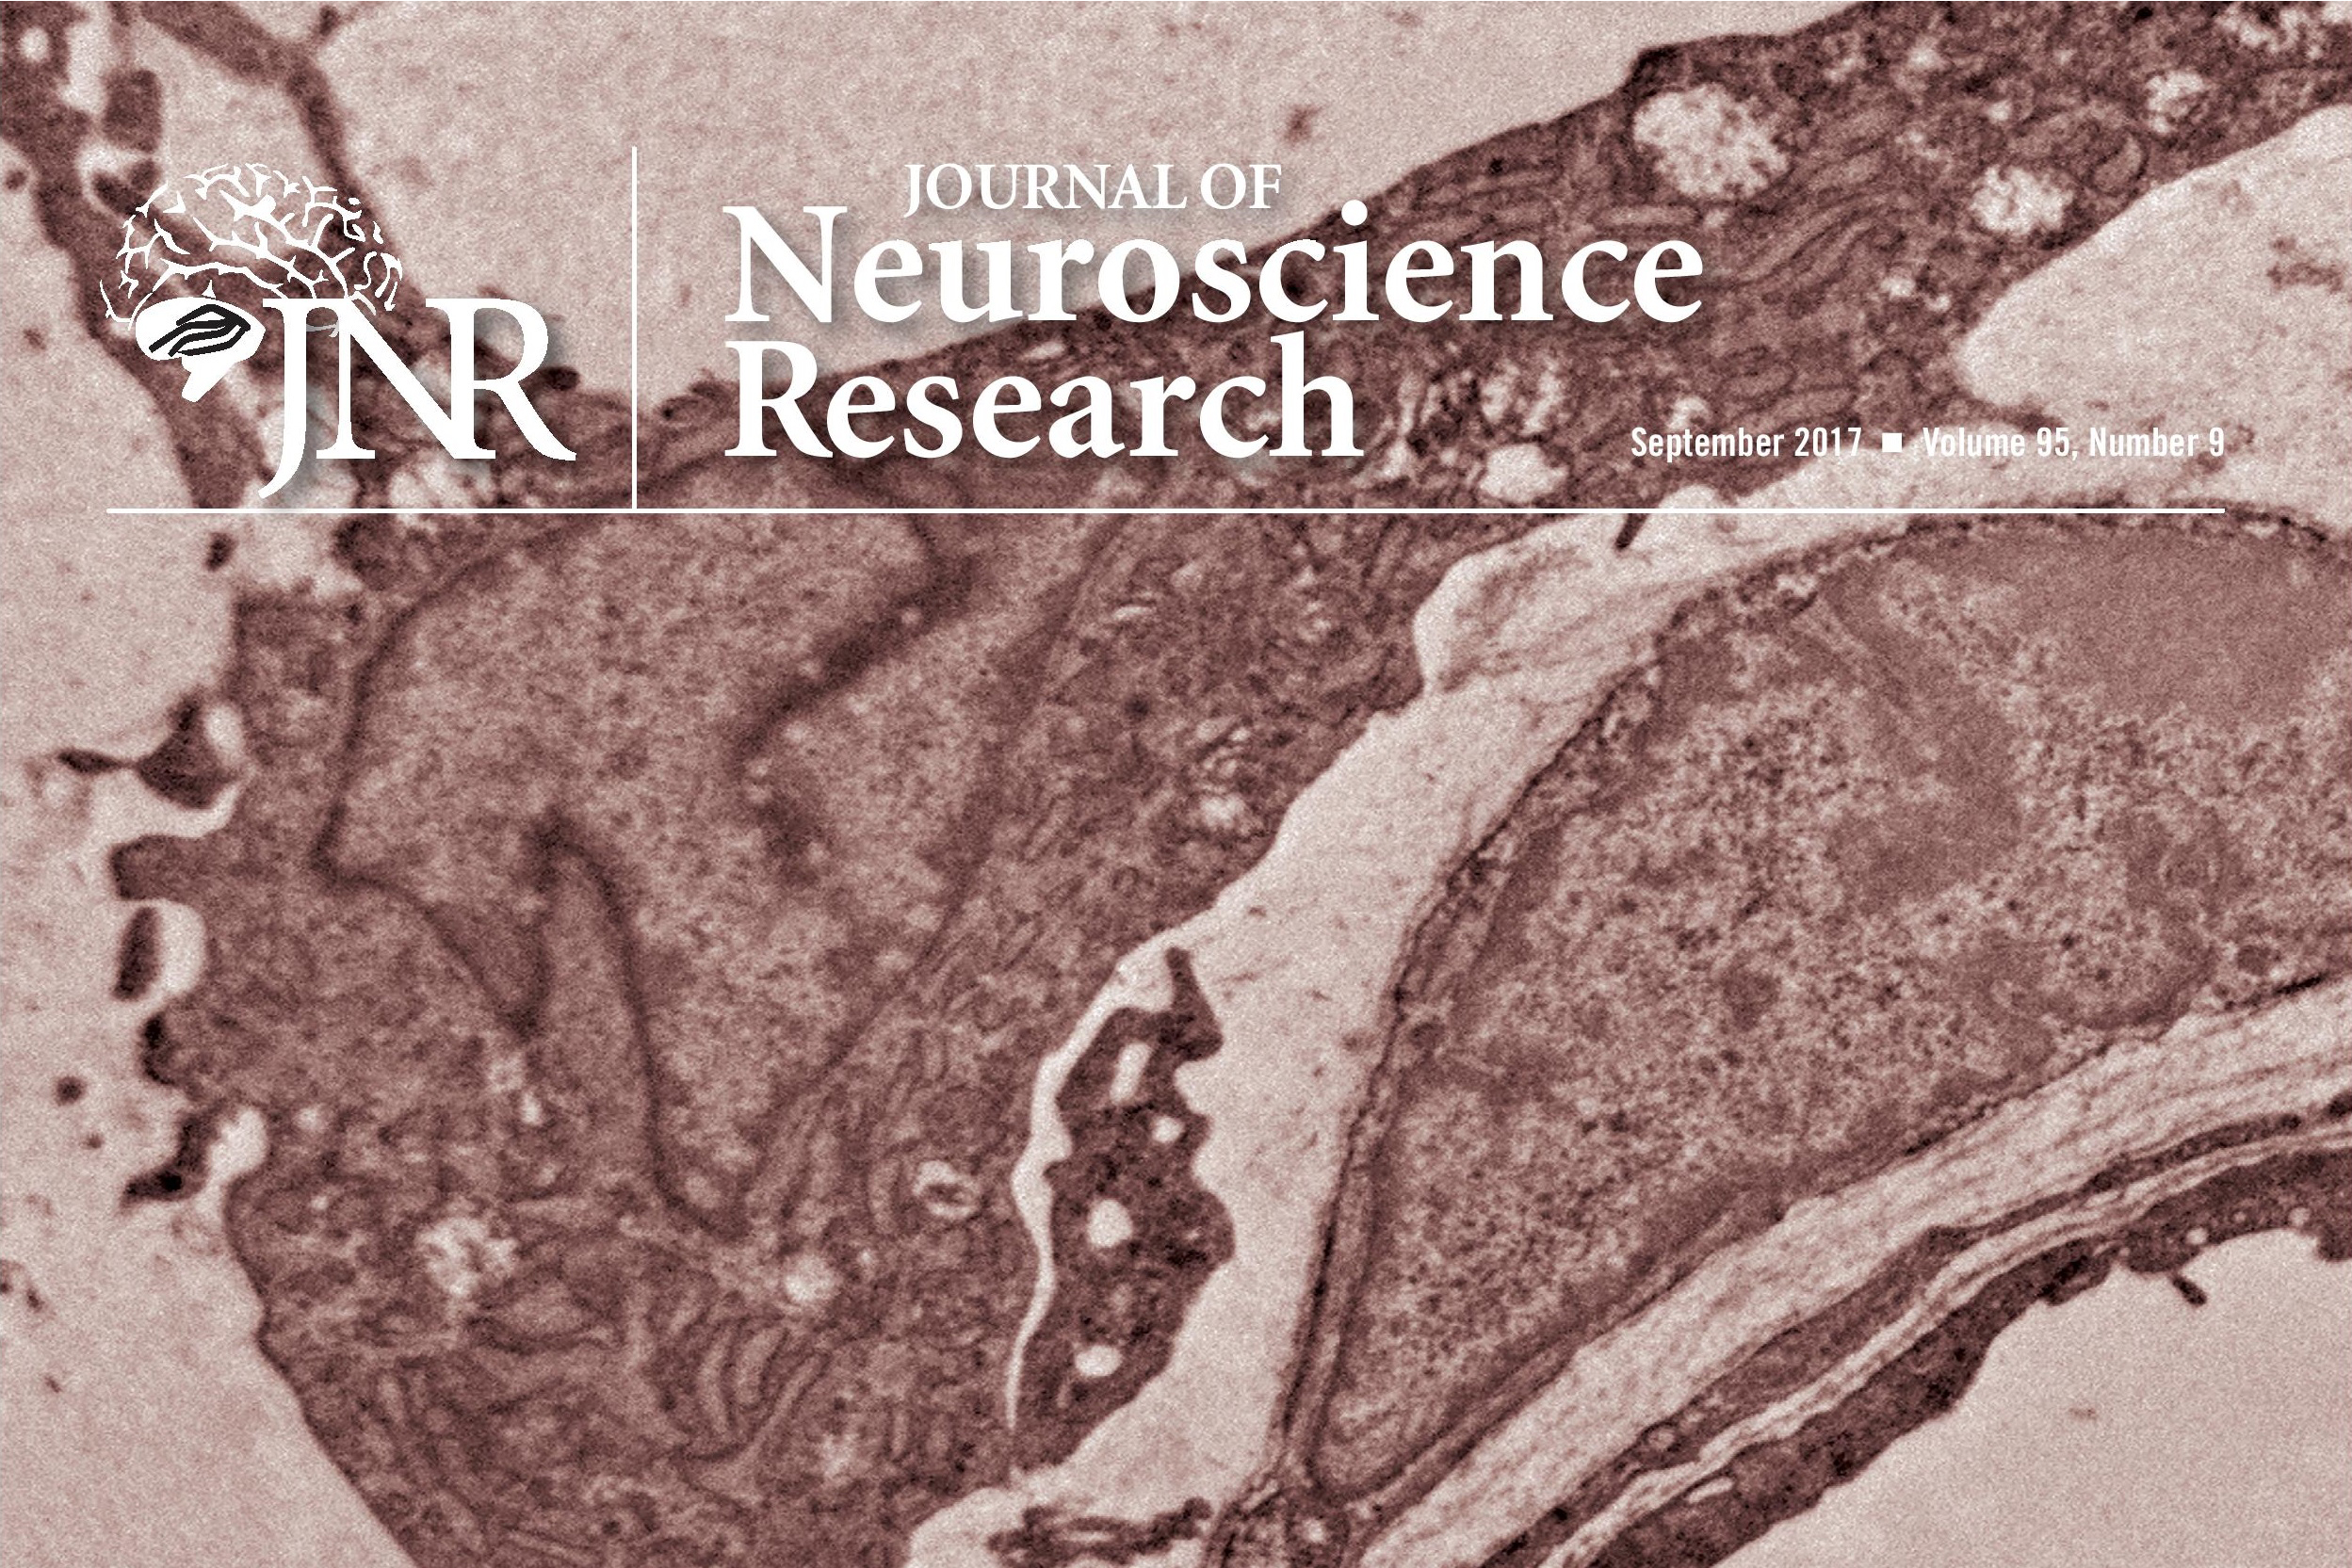 UConn Health's study will be Journal of Neuroscience Research cover story.